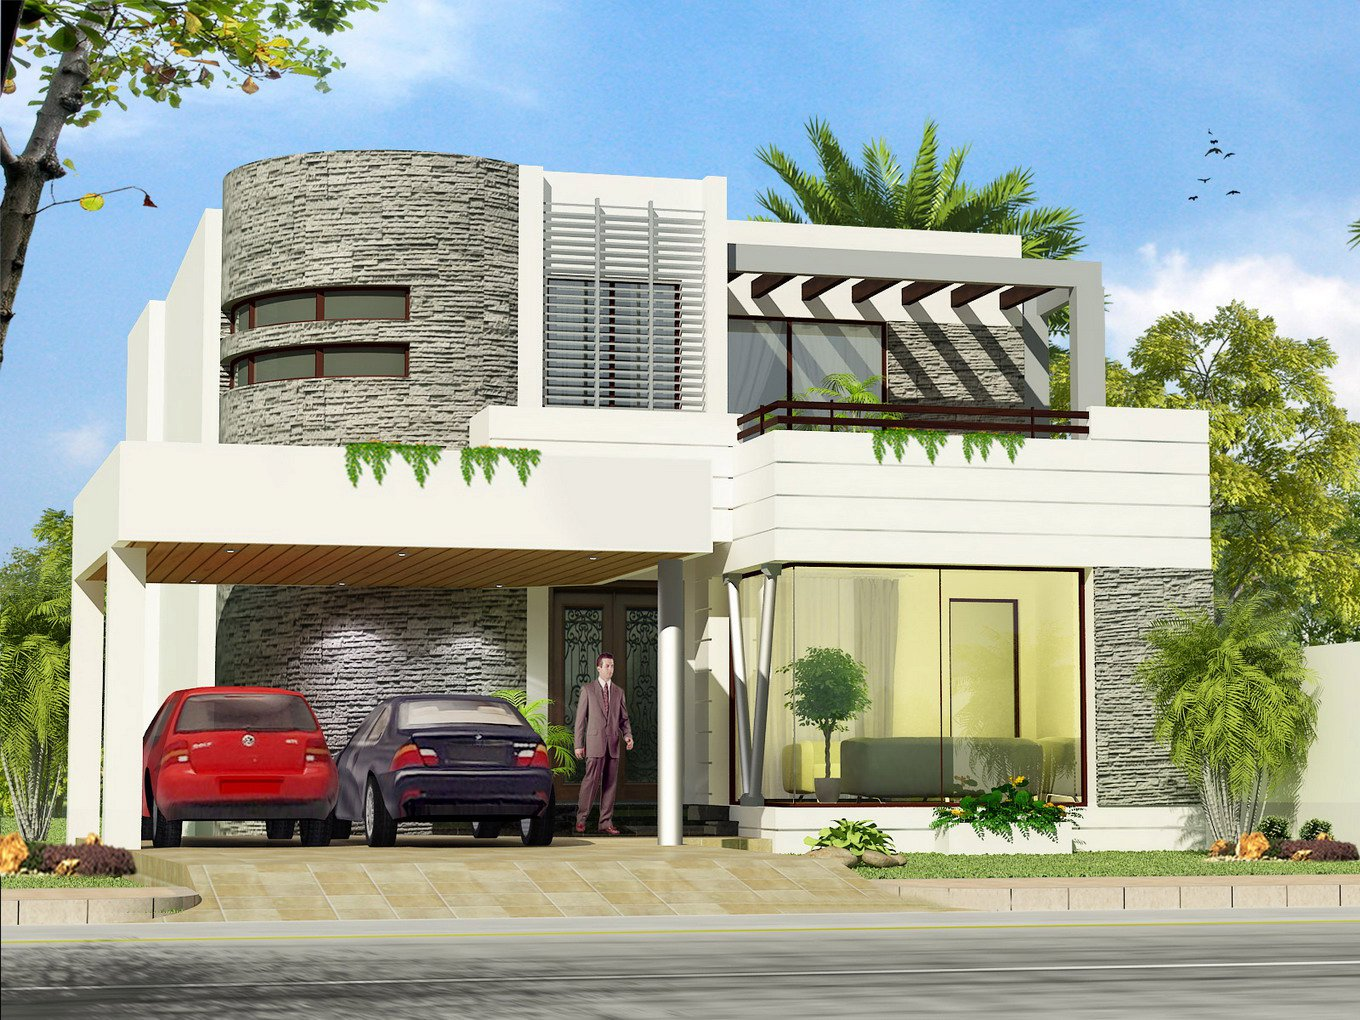 New home designs latest modern homes beautiful latest for Latest building designs and plans